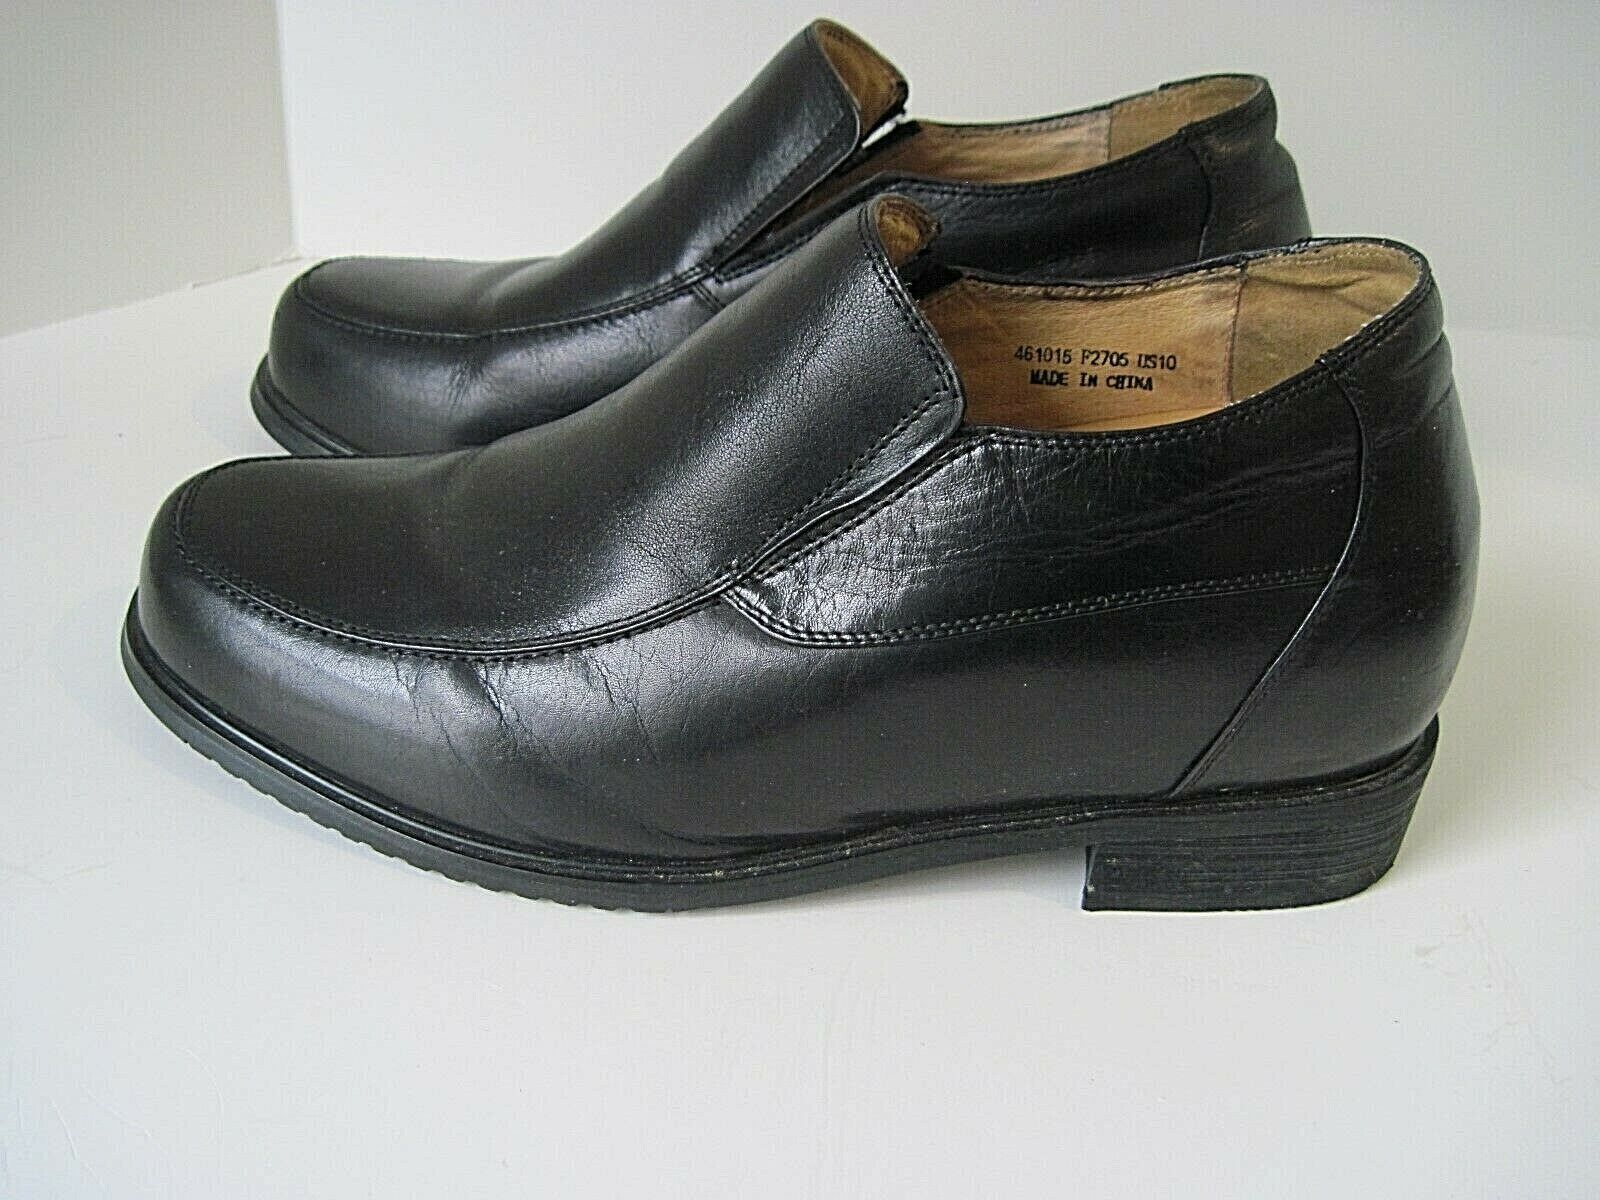 TOTO - 2.2 Inches Elevator Height Increase Black Leather Slip On shoes Size 10